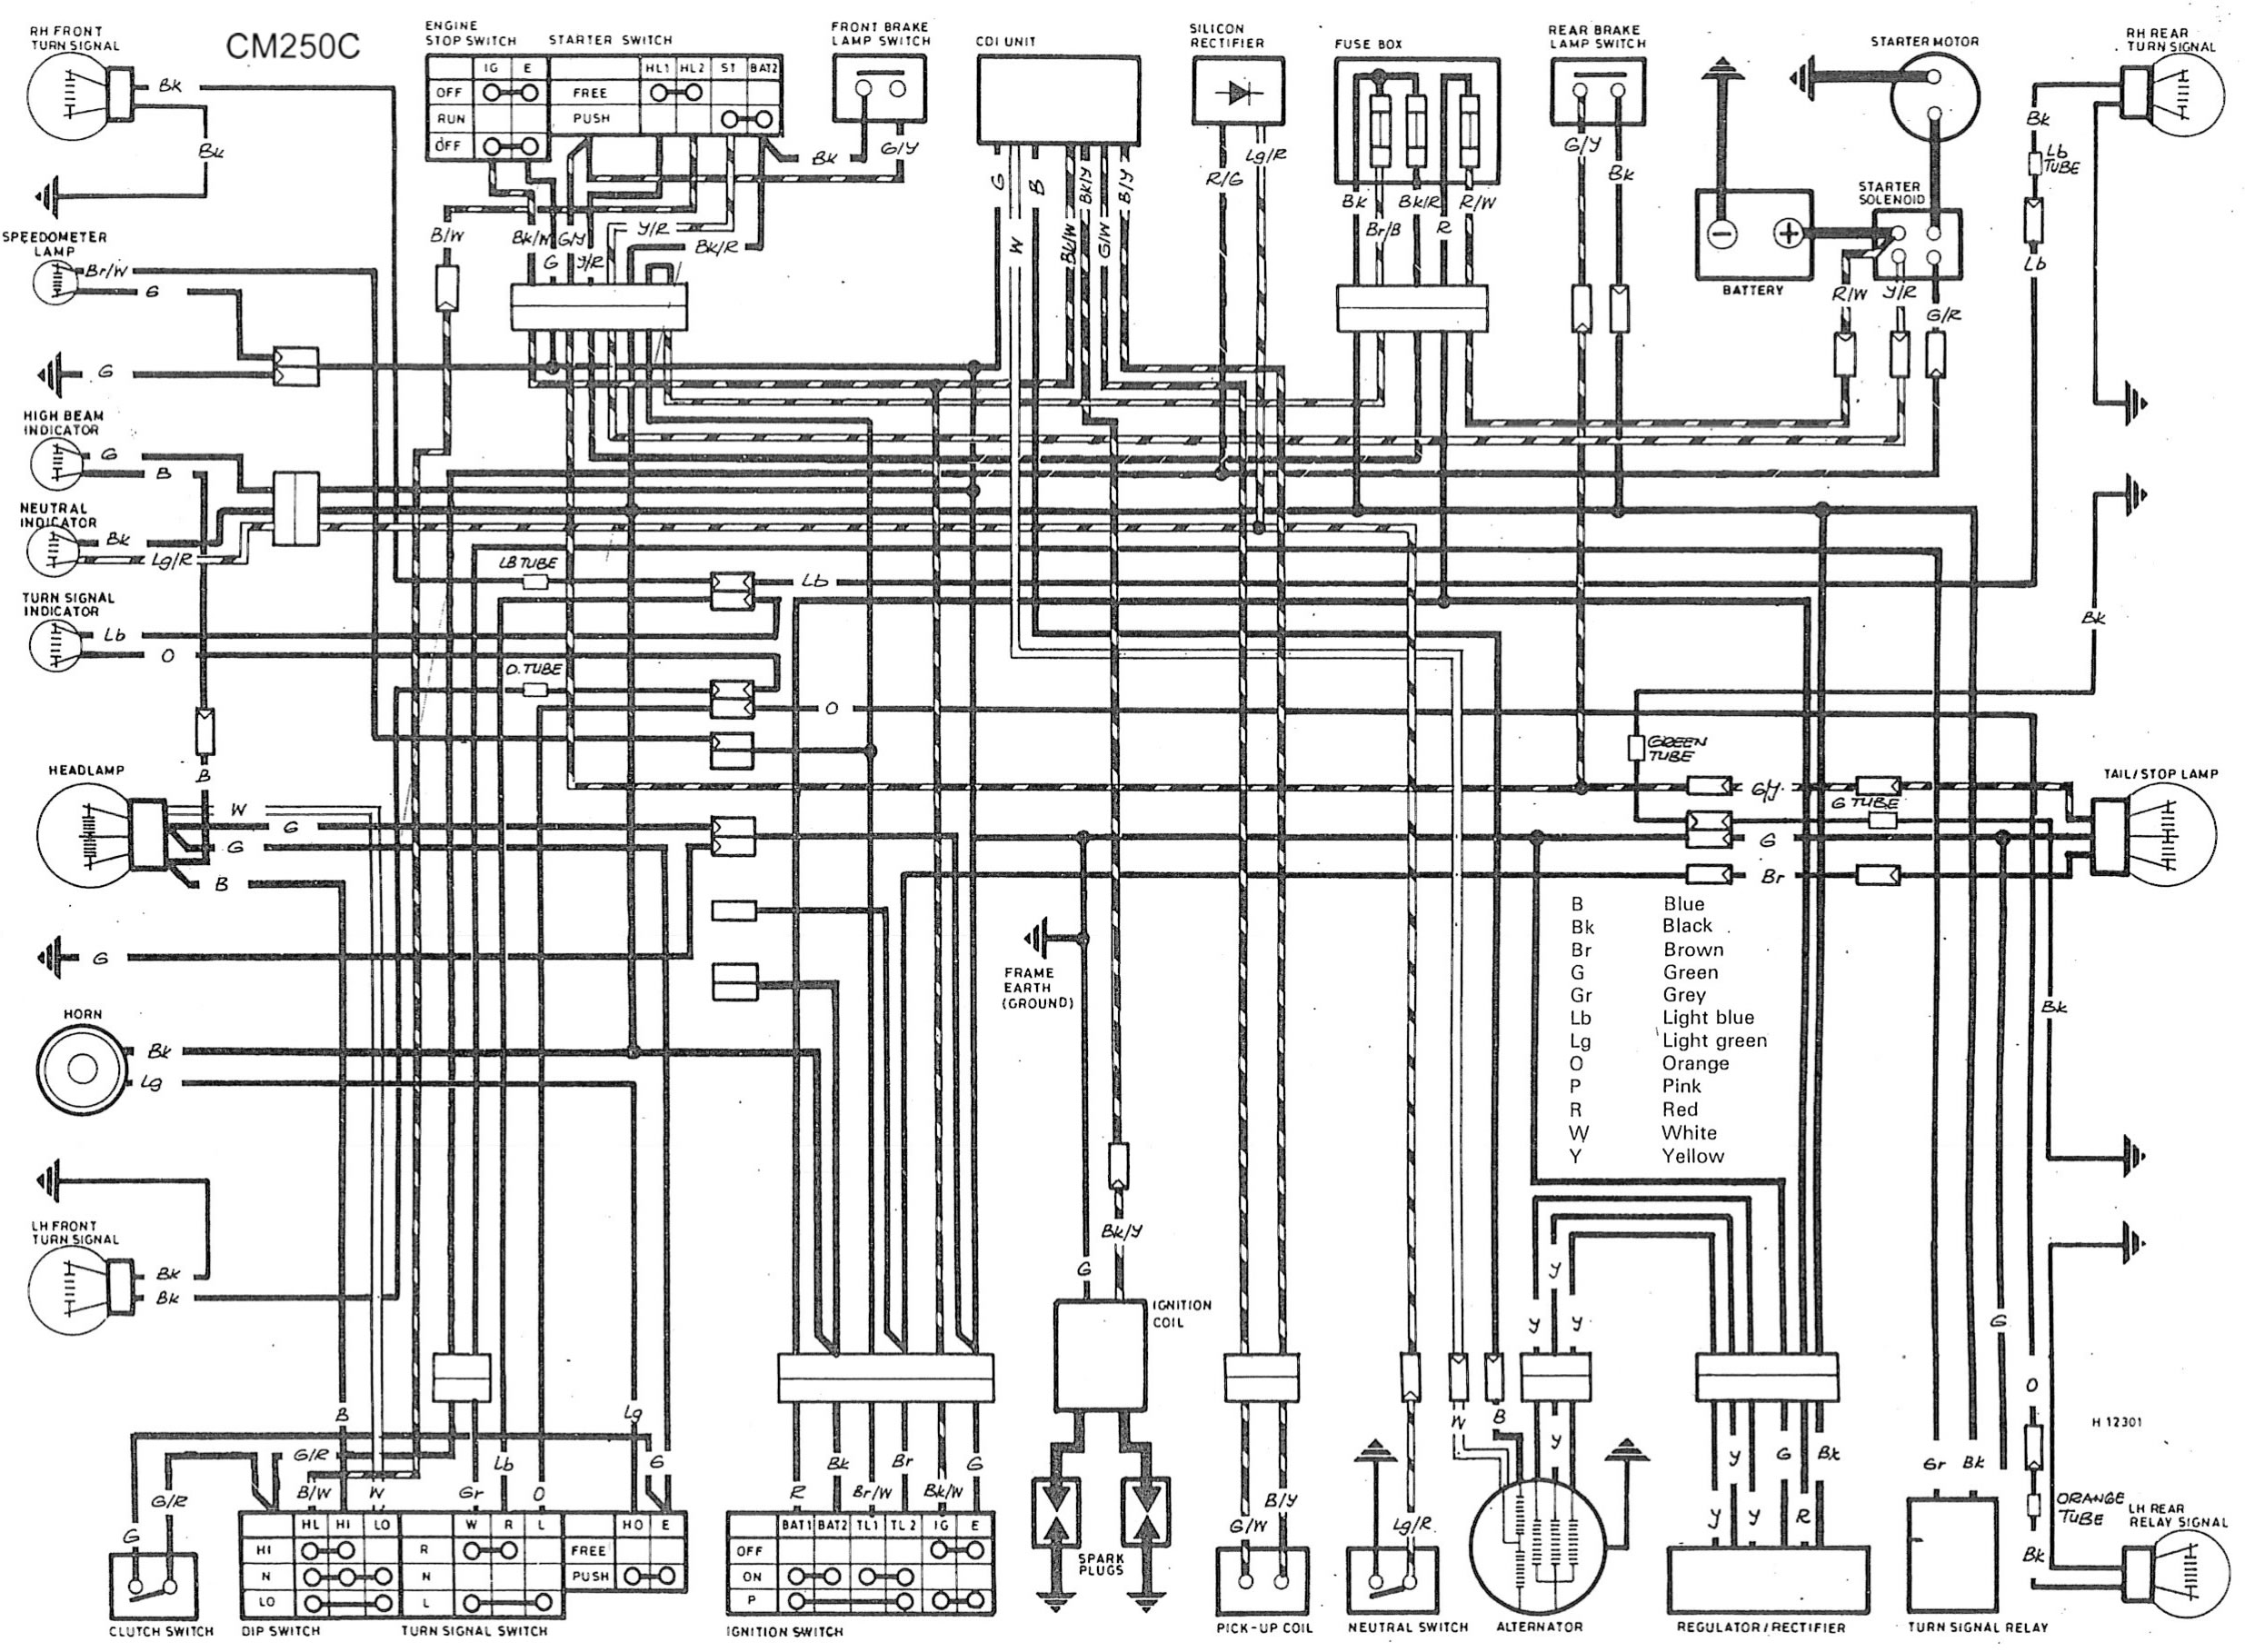 Excellent Yamaha Blaster Wiring Schematic Gallery - Everything You ...